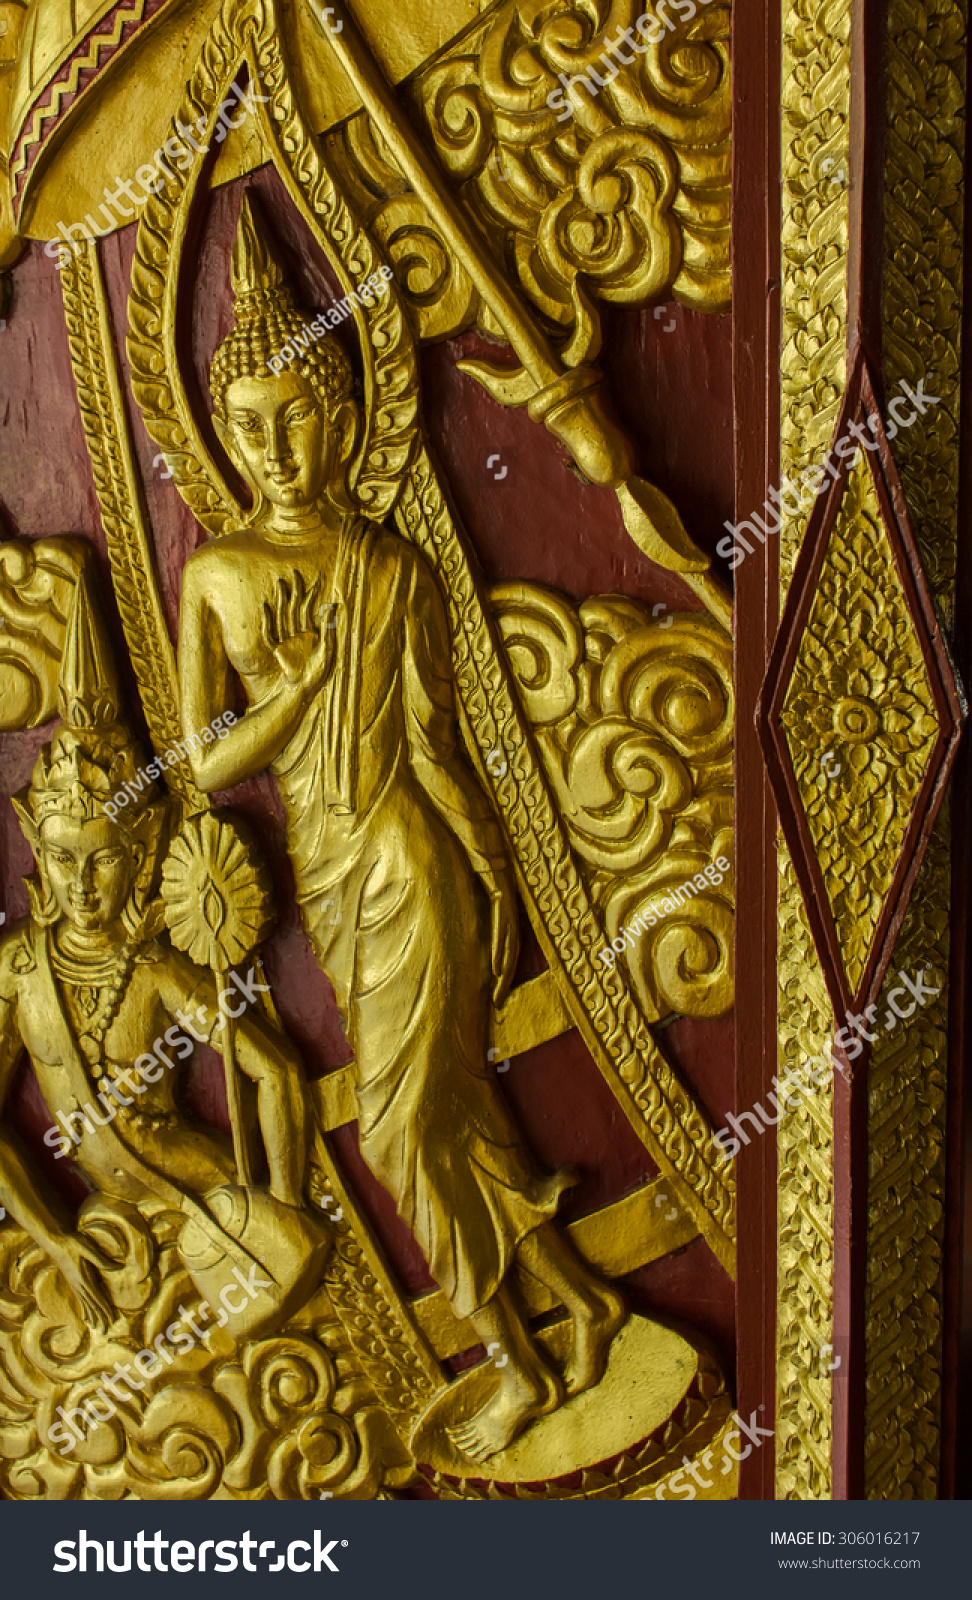 Wood carvings on the temple walls in public. Buddha wooden carving ...